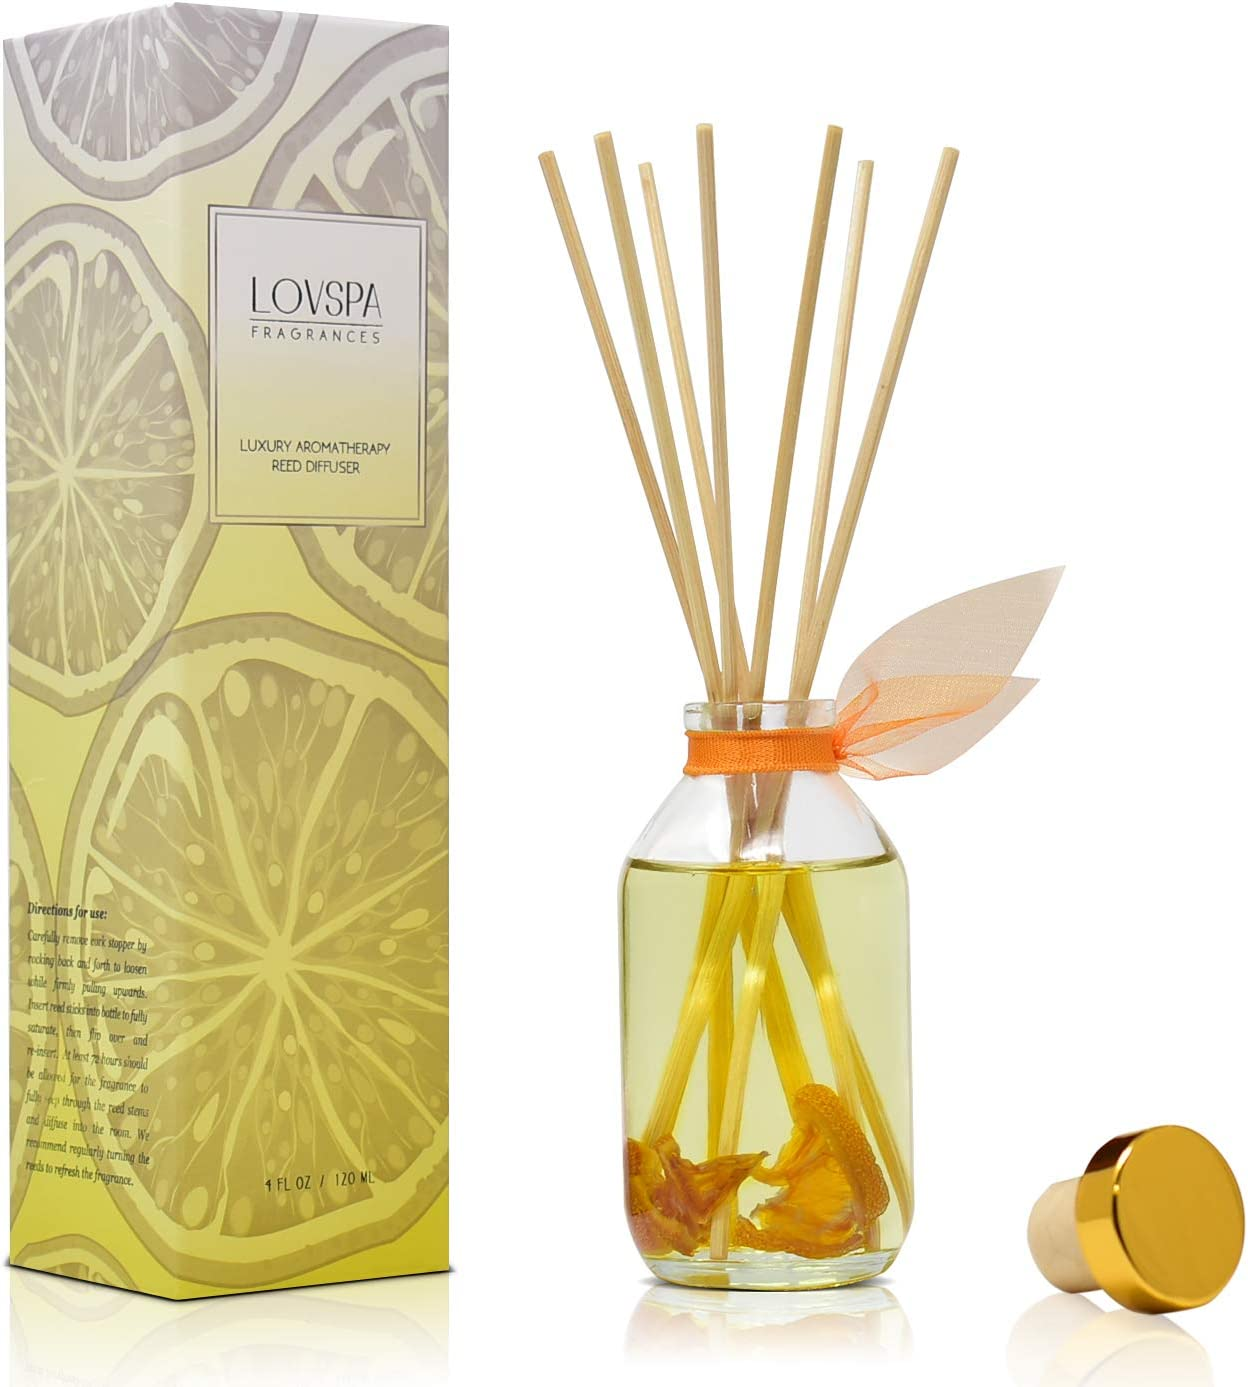 LOVSPA Valencia Orange Reed Diffuser Set - Scented Stick Room Freshener - Made in The USA